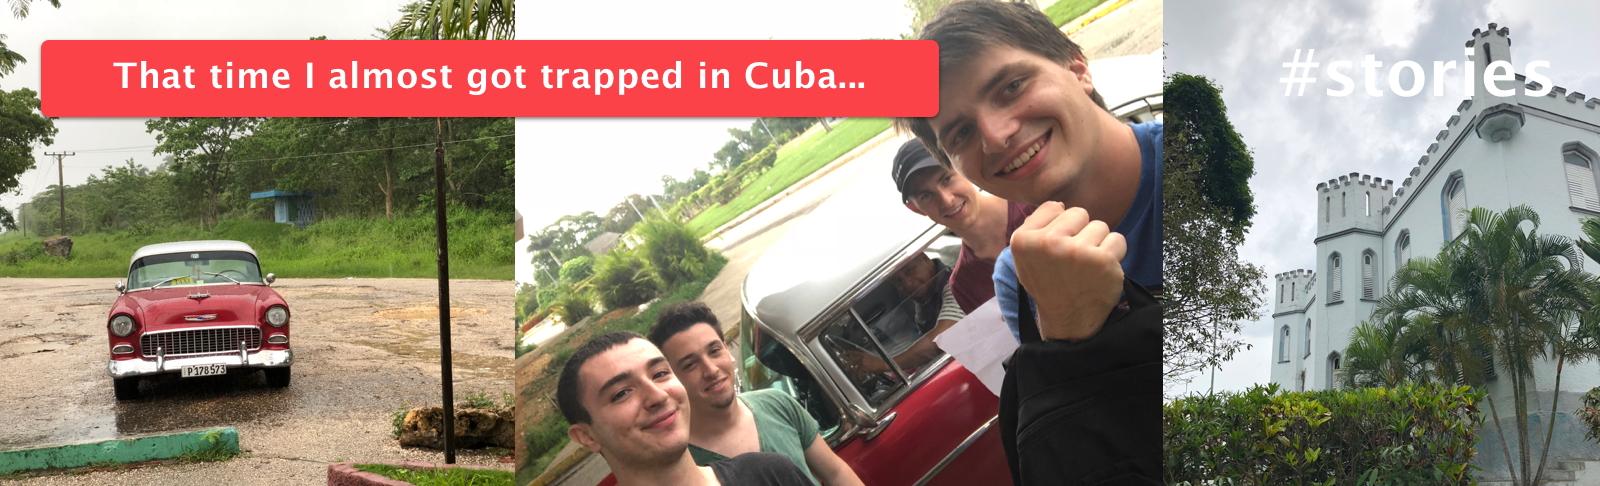 Almost Trapped in Cuba